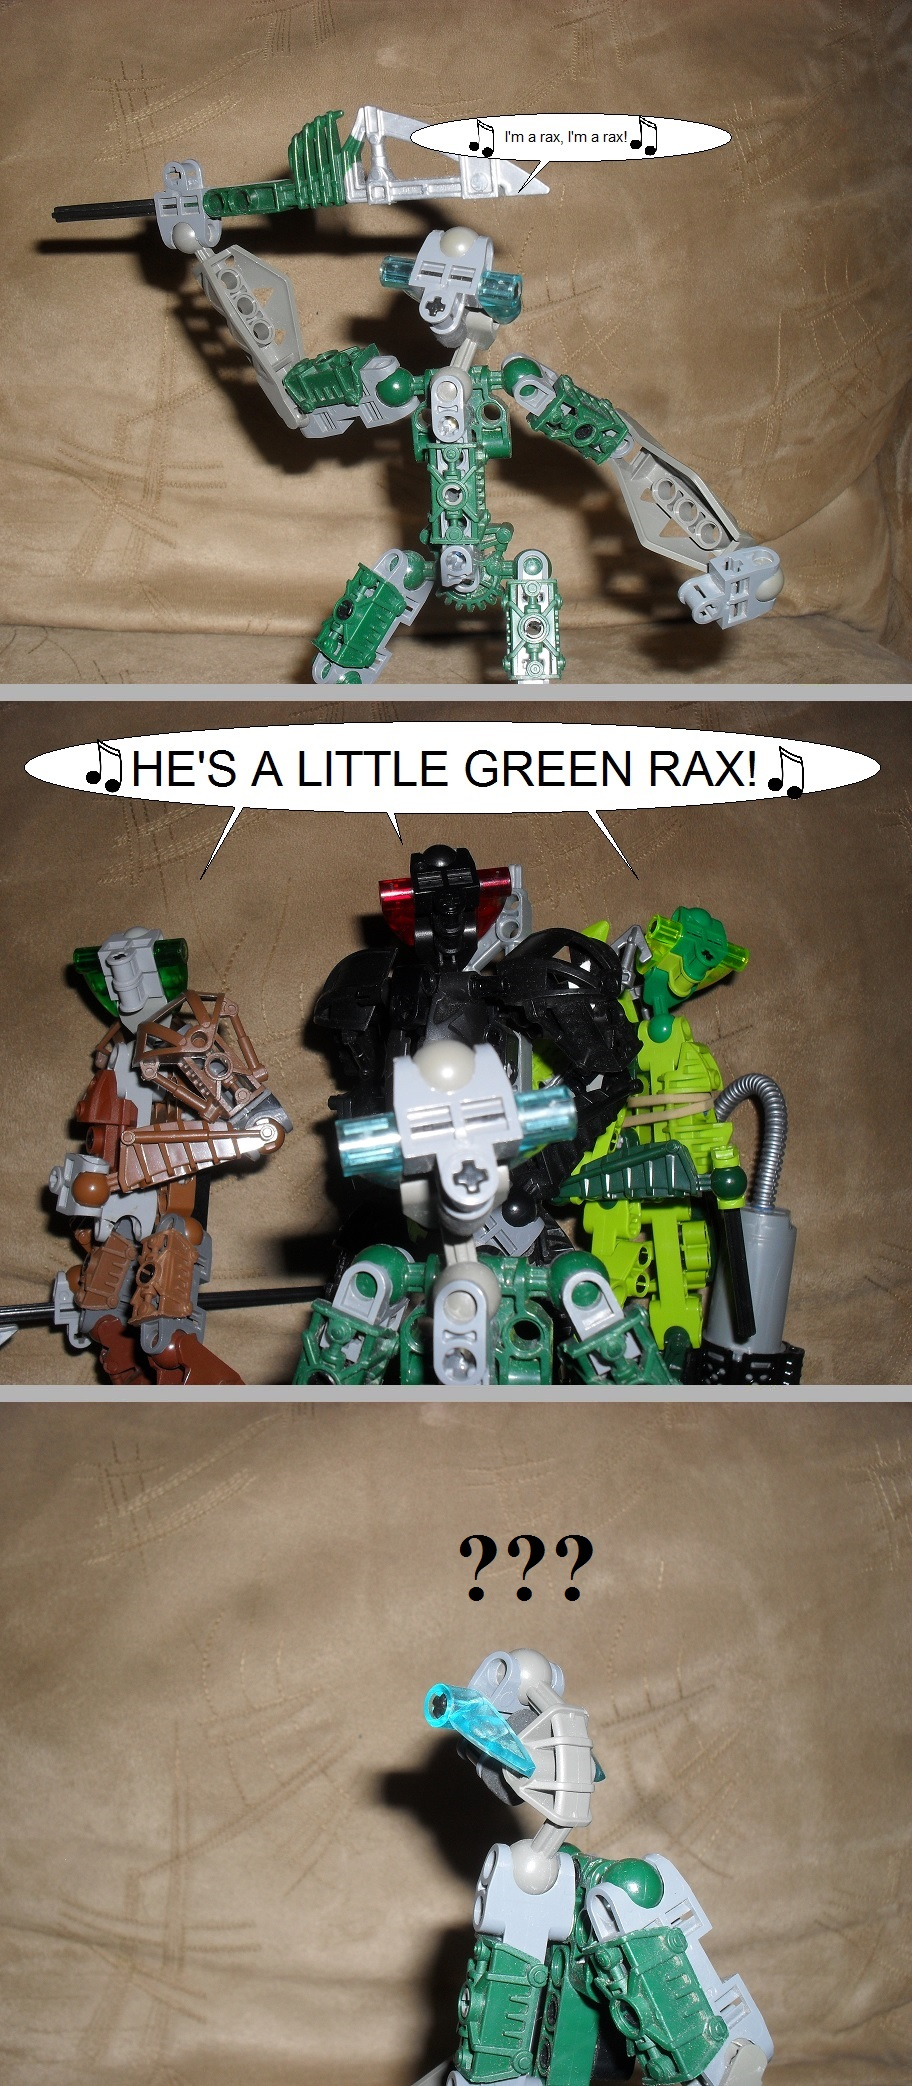 The little green rax